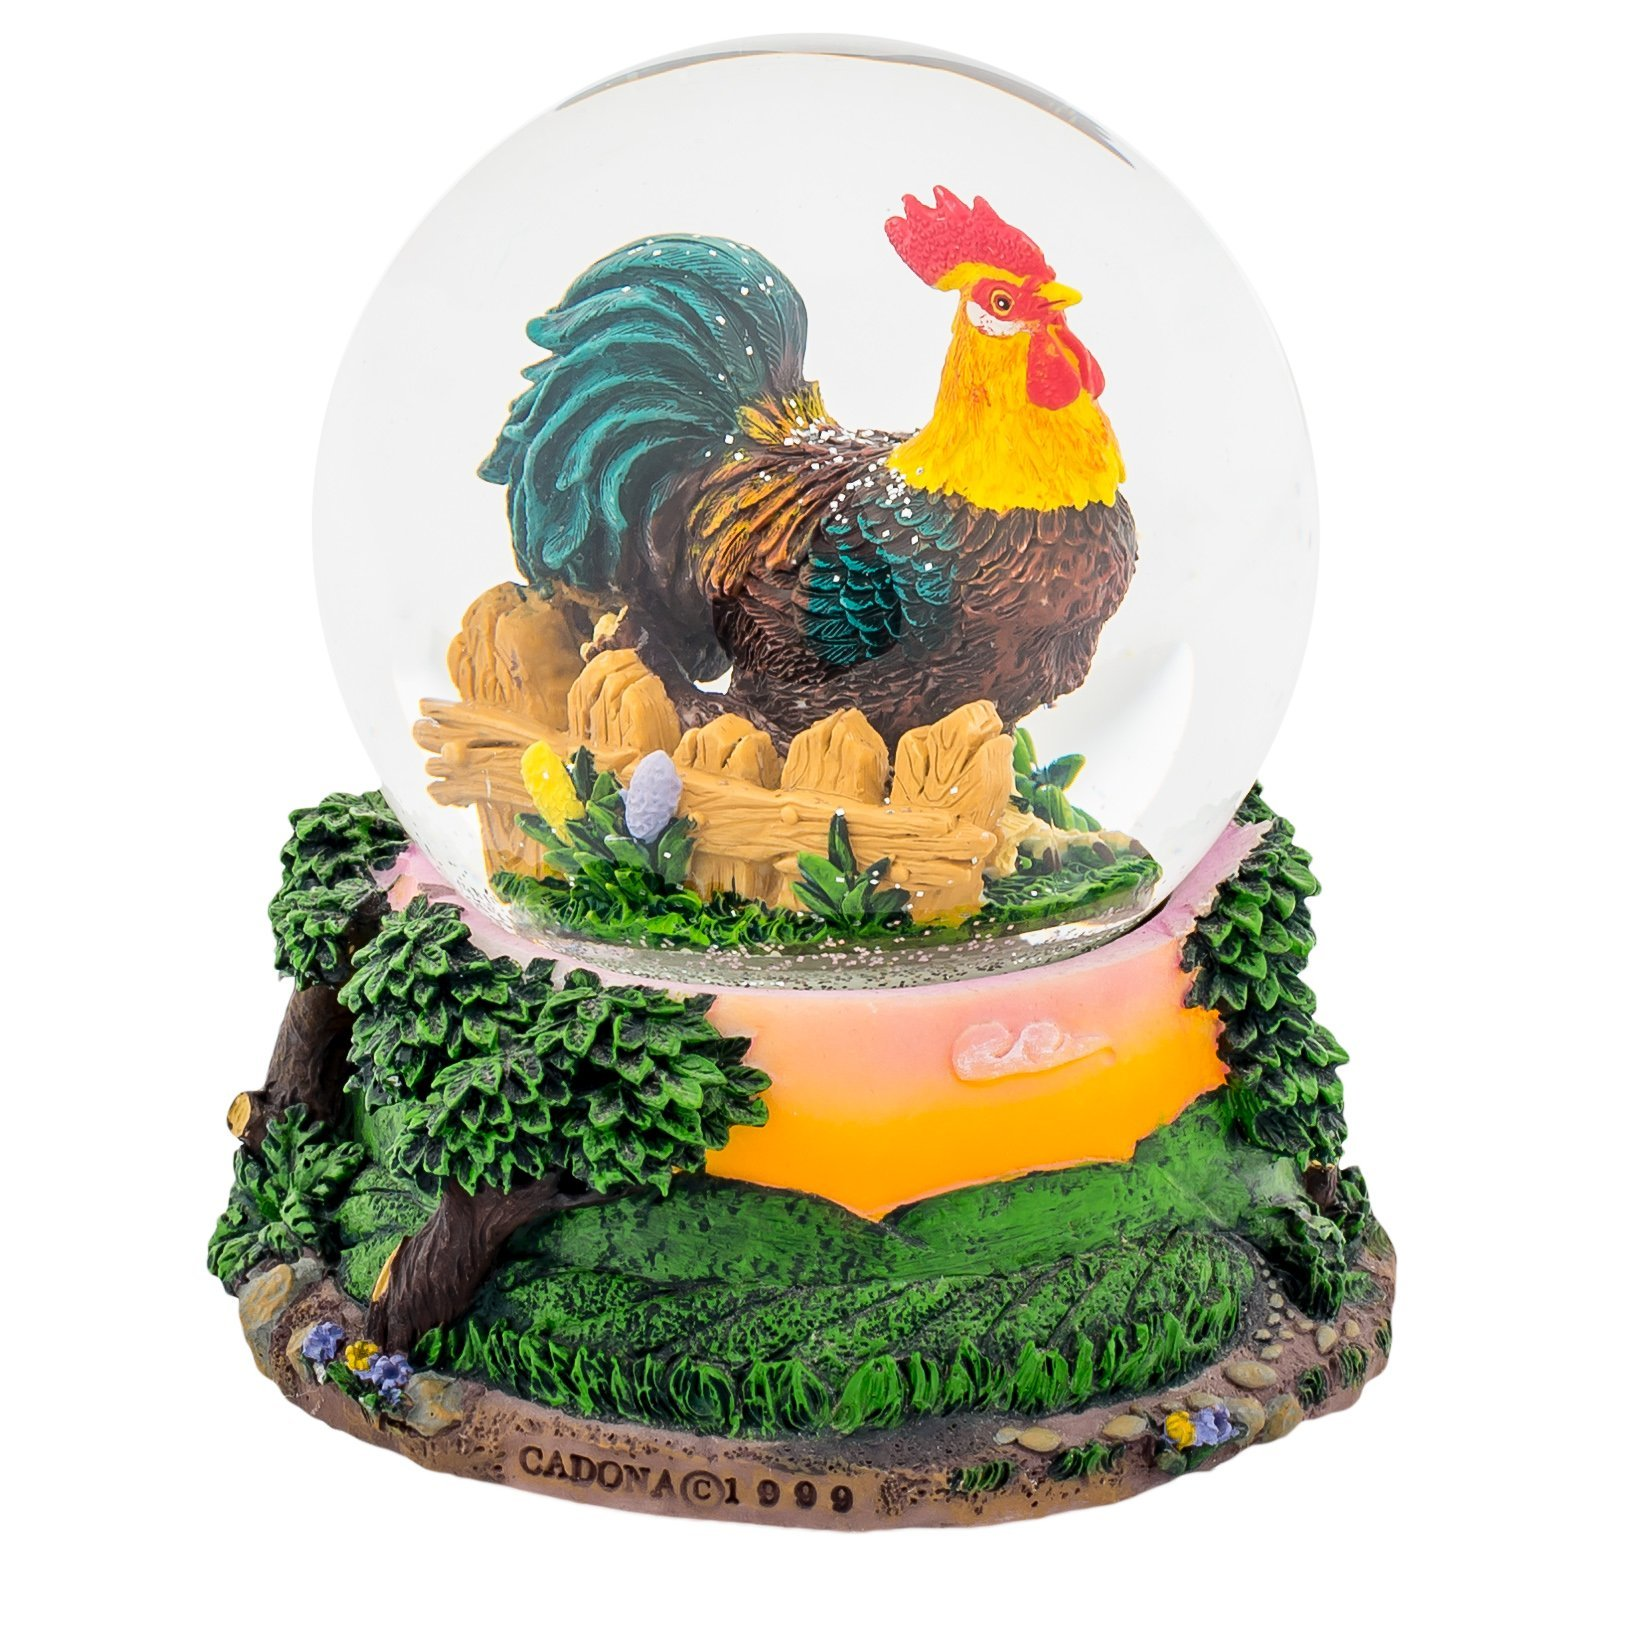 Sunrise Rooster and Picket Fence 100MM Water Globe Plays Tune Home on the Range by Cadona International, Inc